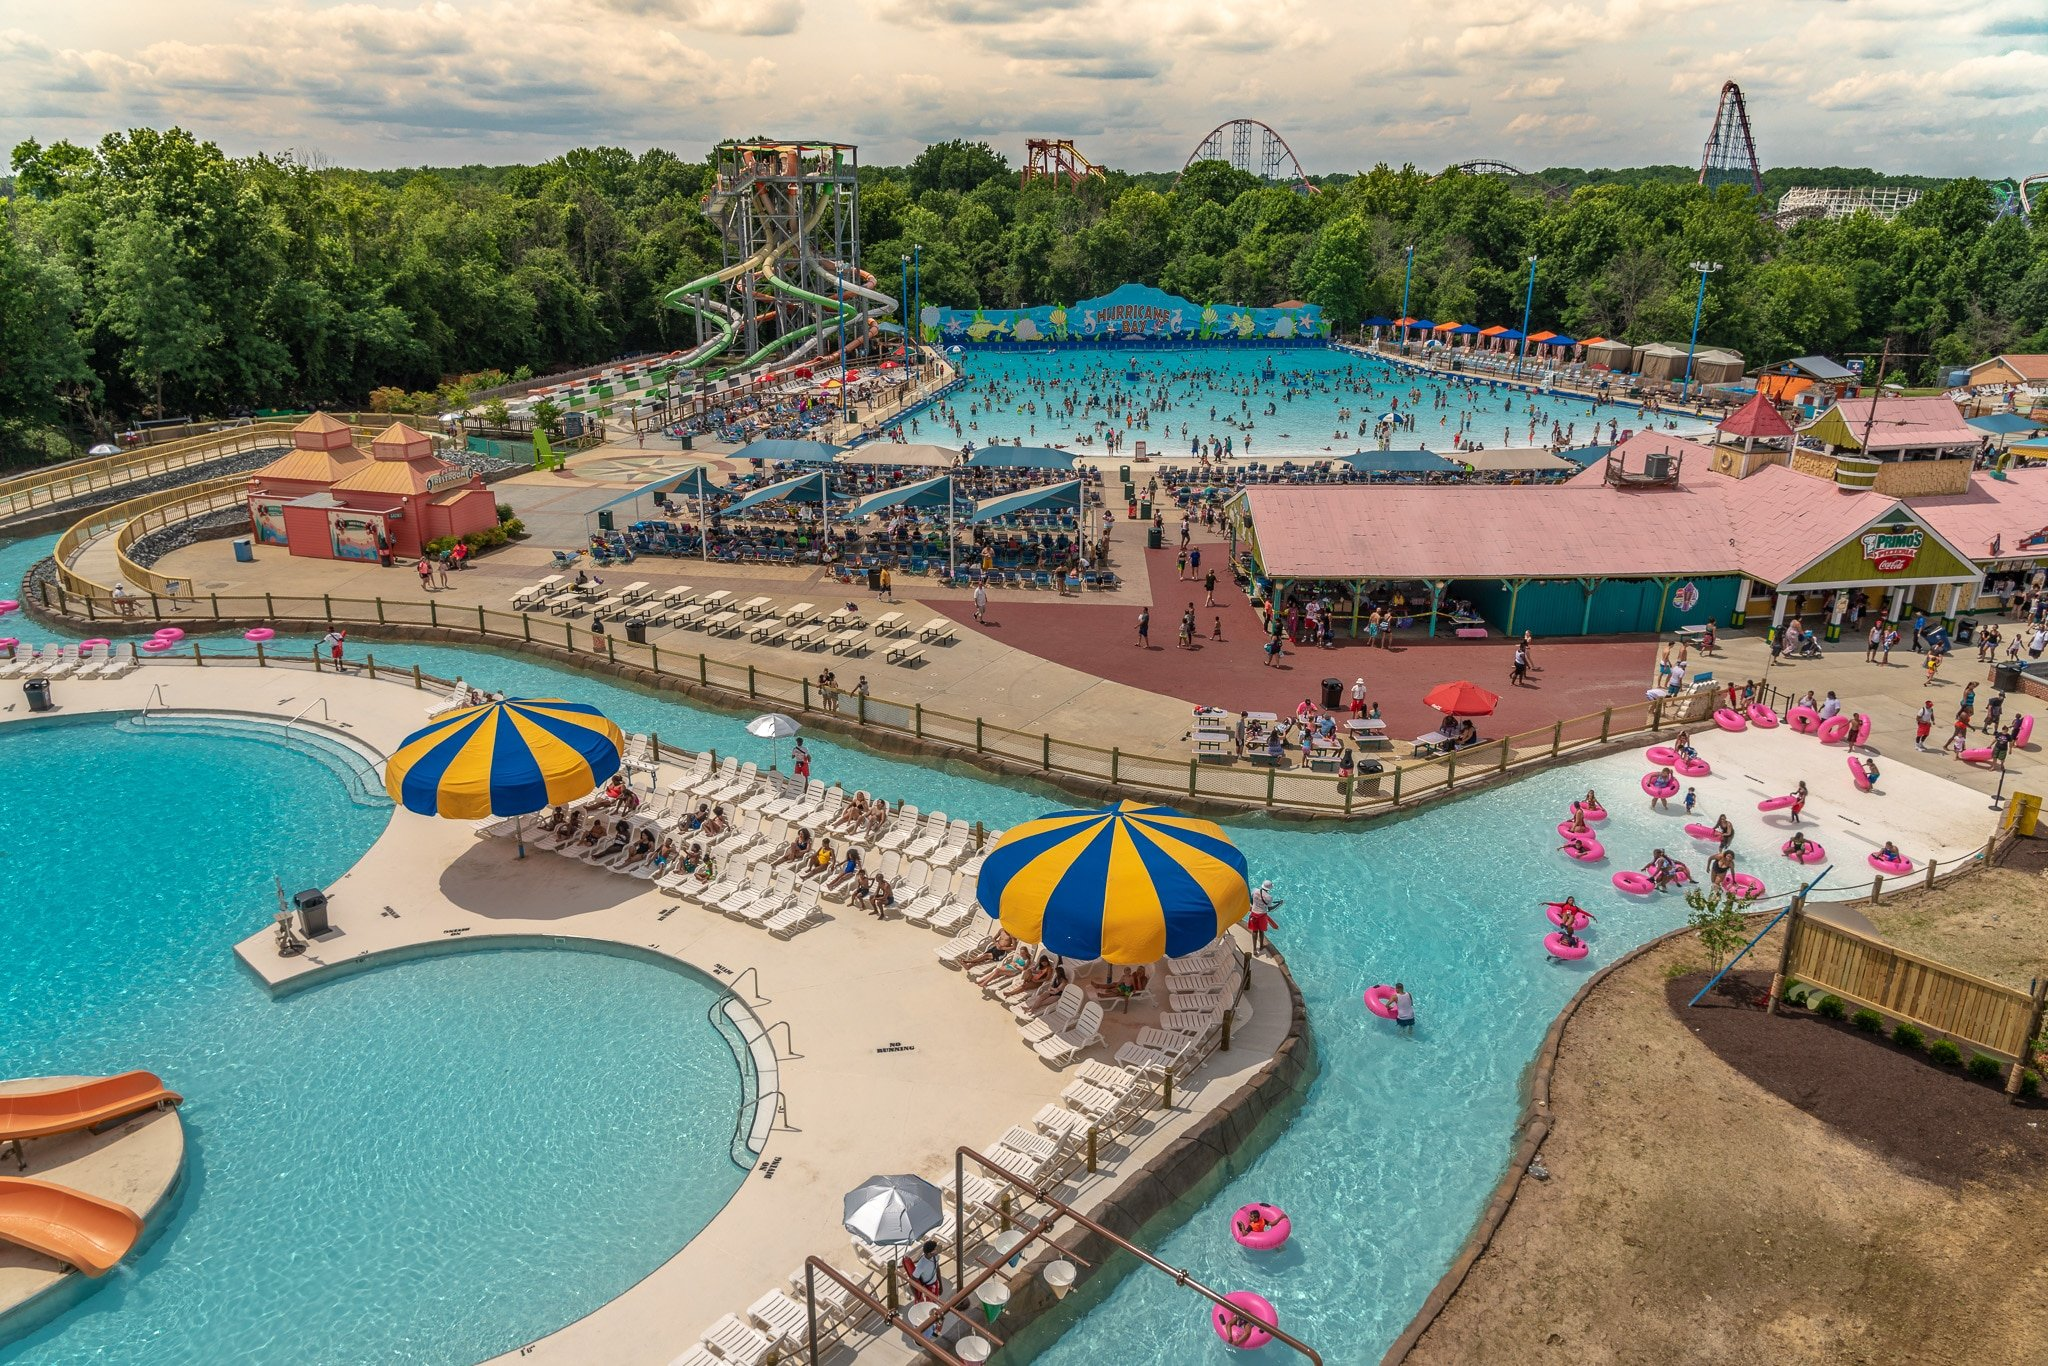 Whaoo River and Hurricane Harbor. Six Flags America is welcoming back their guests starting Friday, July 3. With new safety measures, hygiene protocols and new technology systems to protect their guests and employees, they plan to open Hurricane Harbor for the summer crowd..